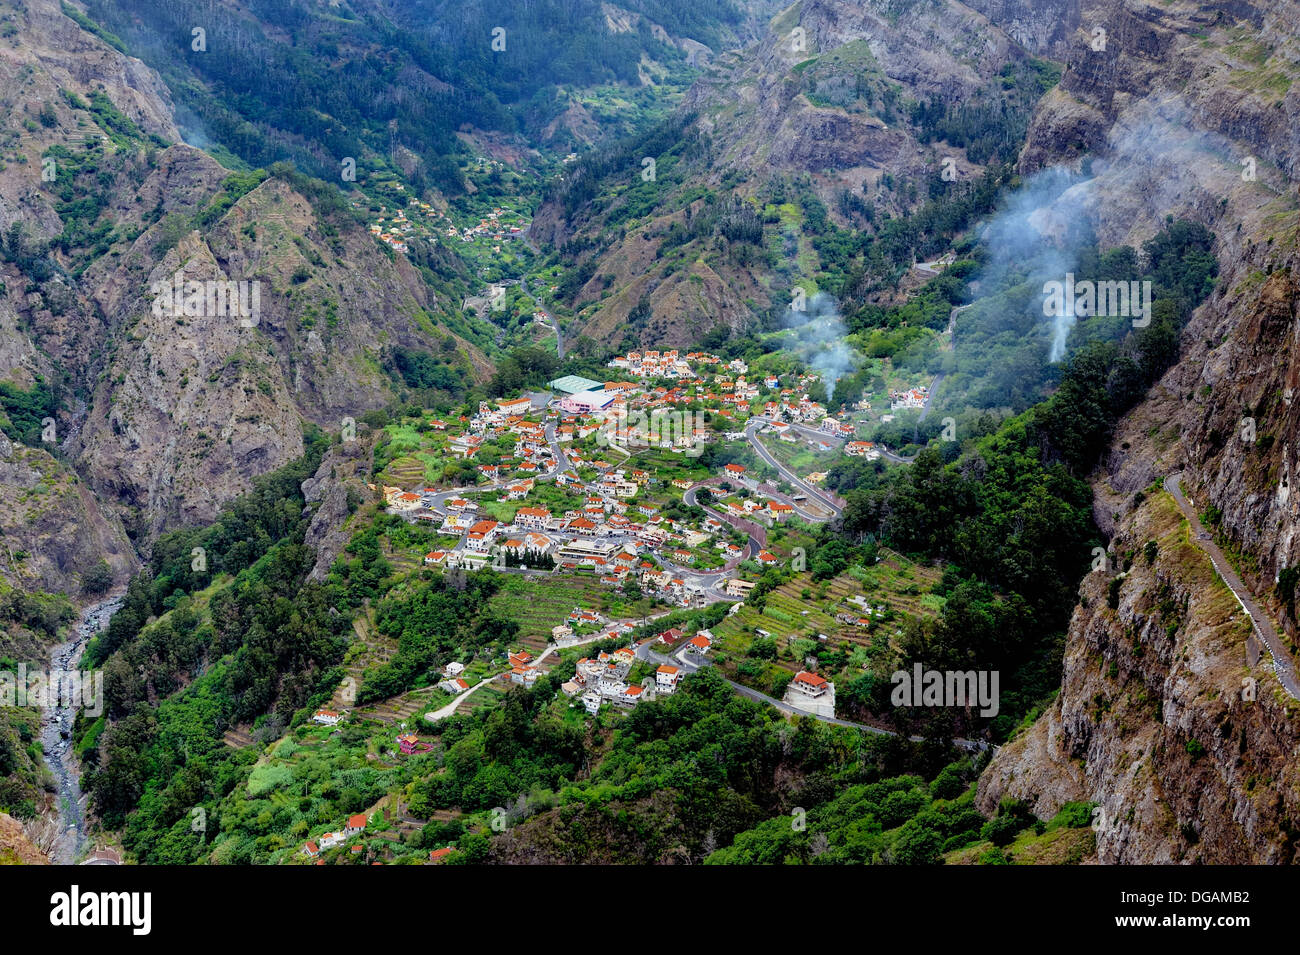 Madeira Portugal looking down into the village of Curral das Freiras also known as Nuns valley - Stock Image